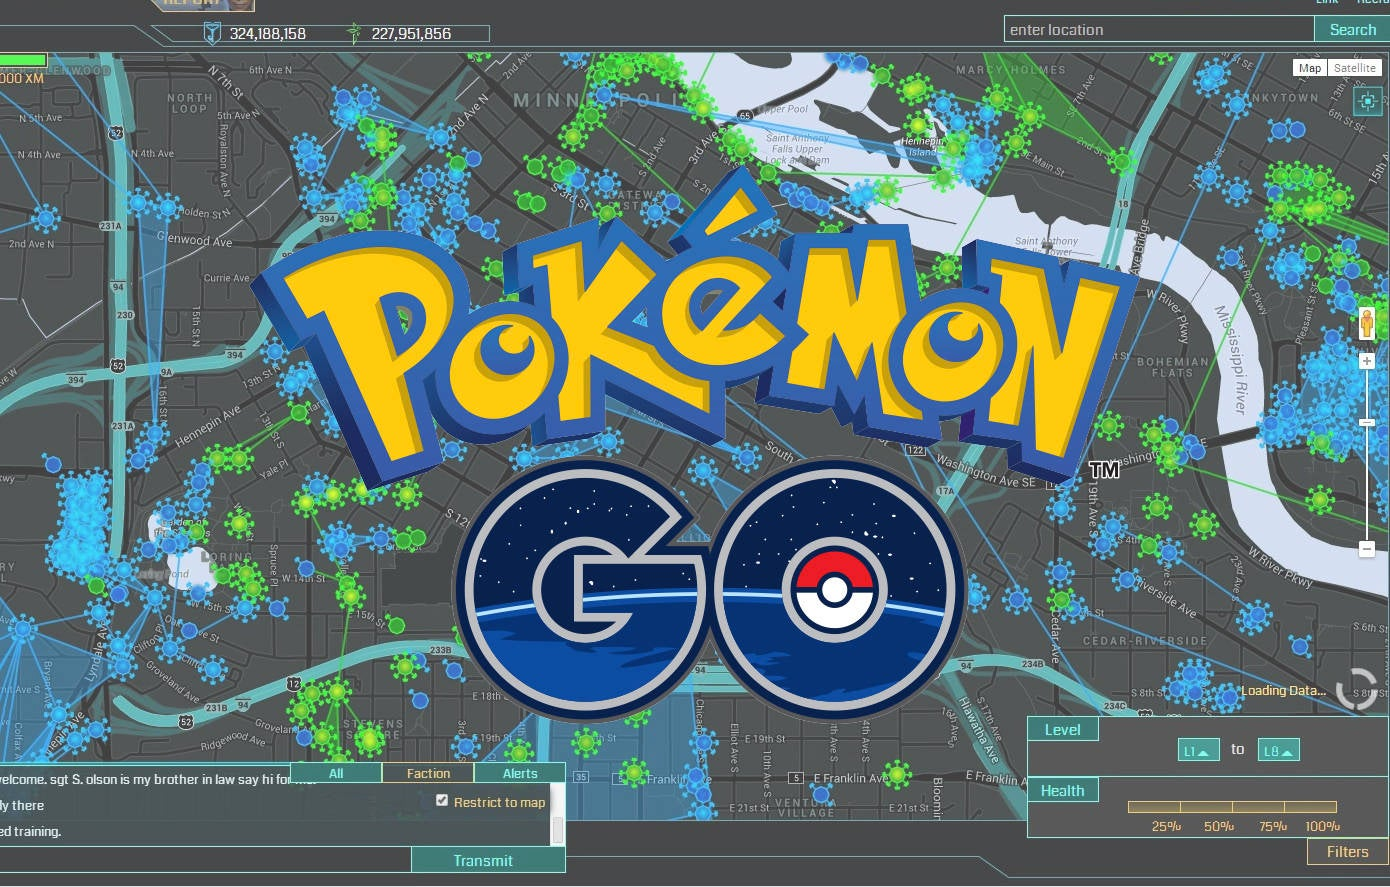 pokemongo ingress